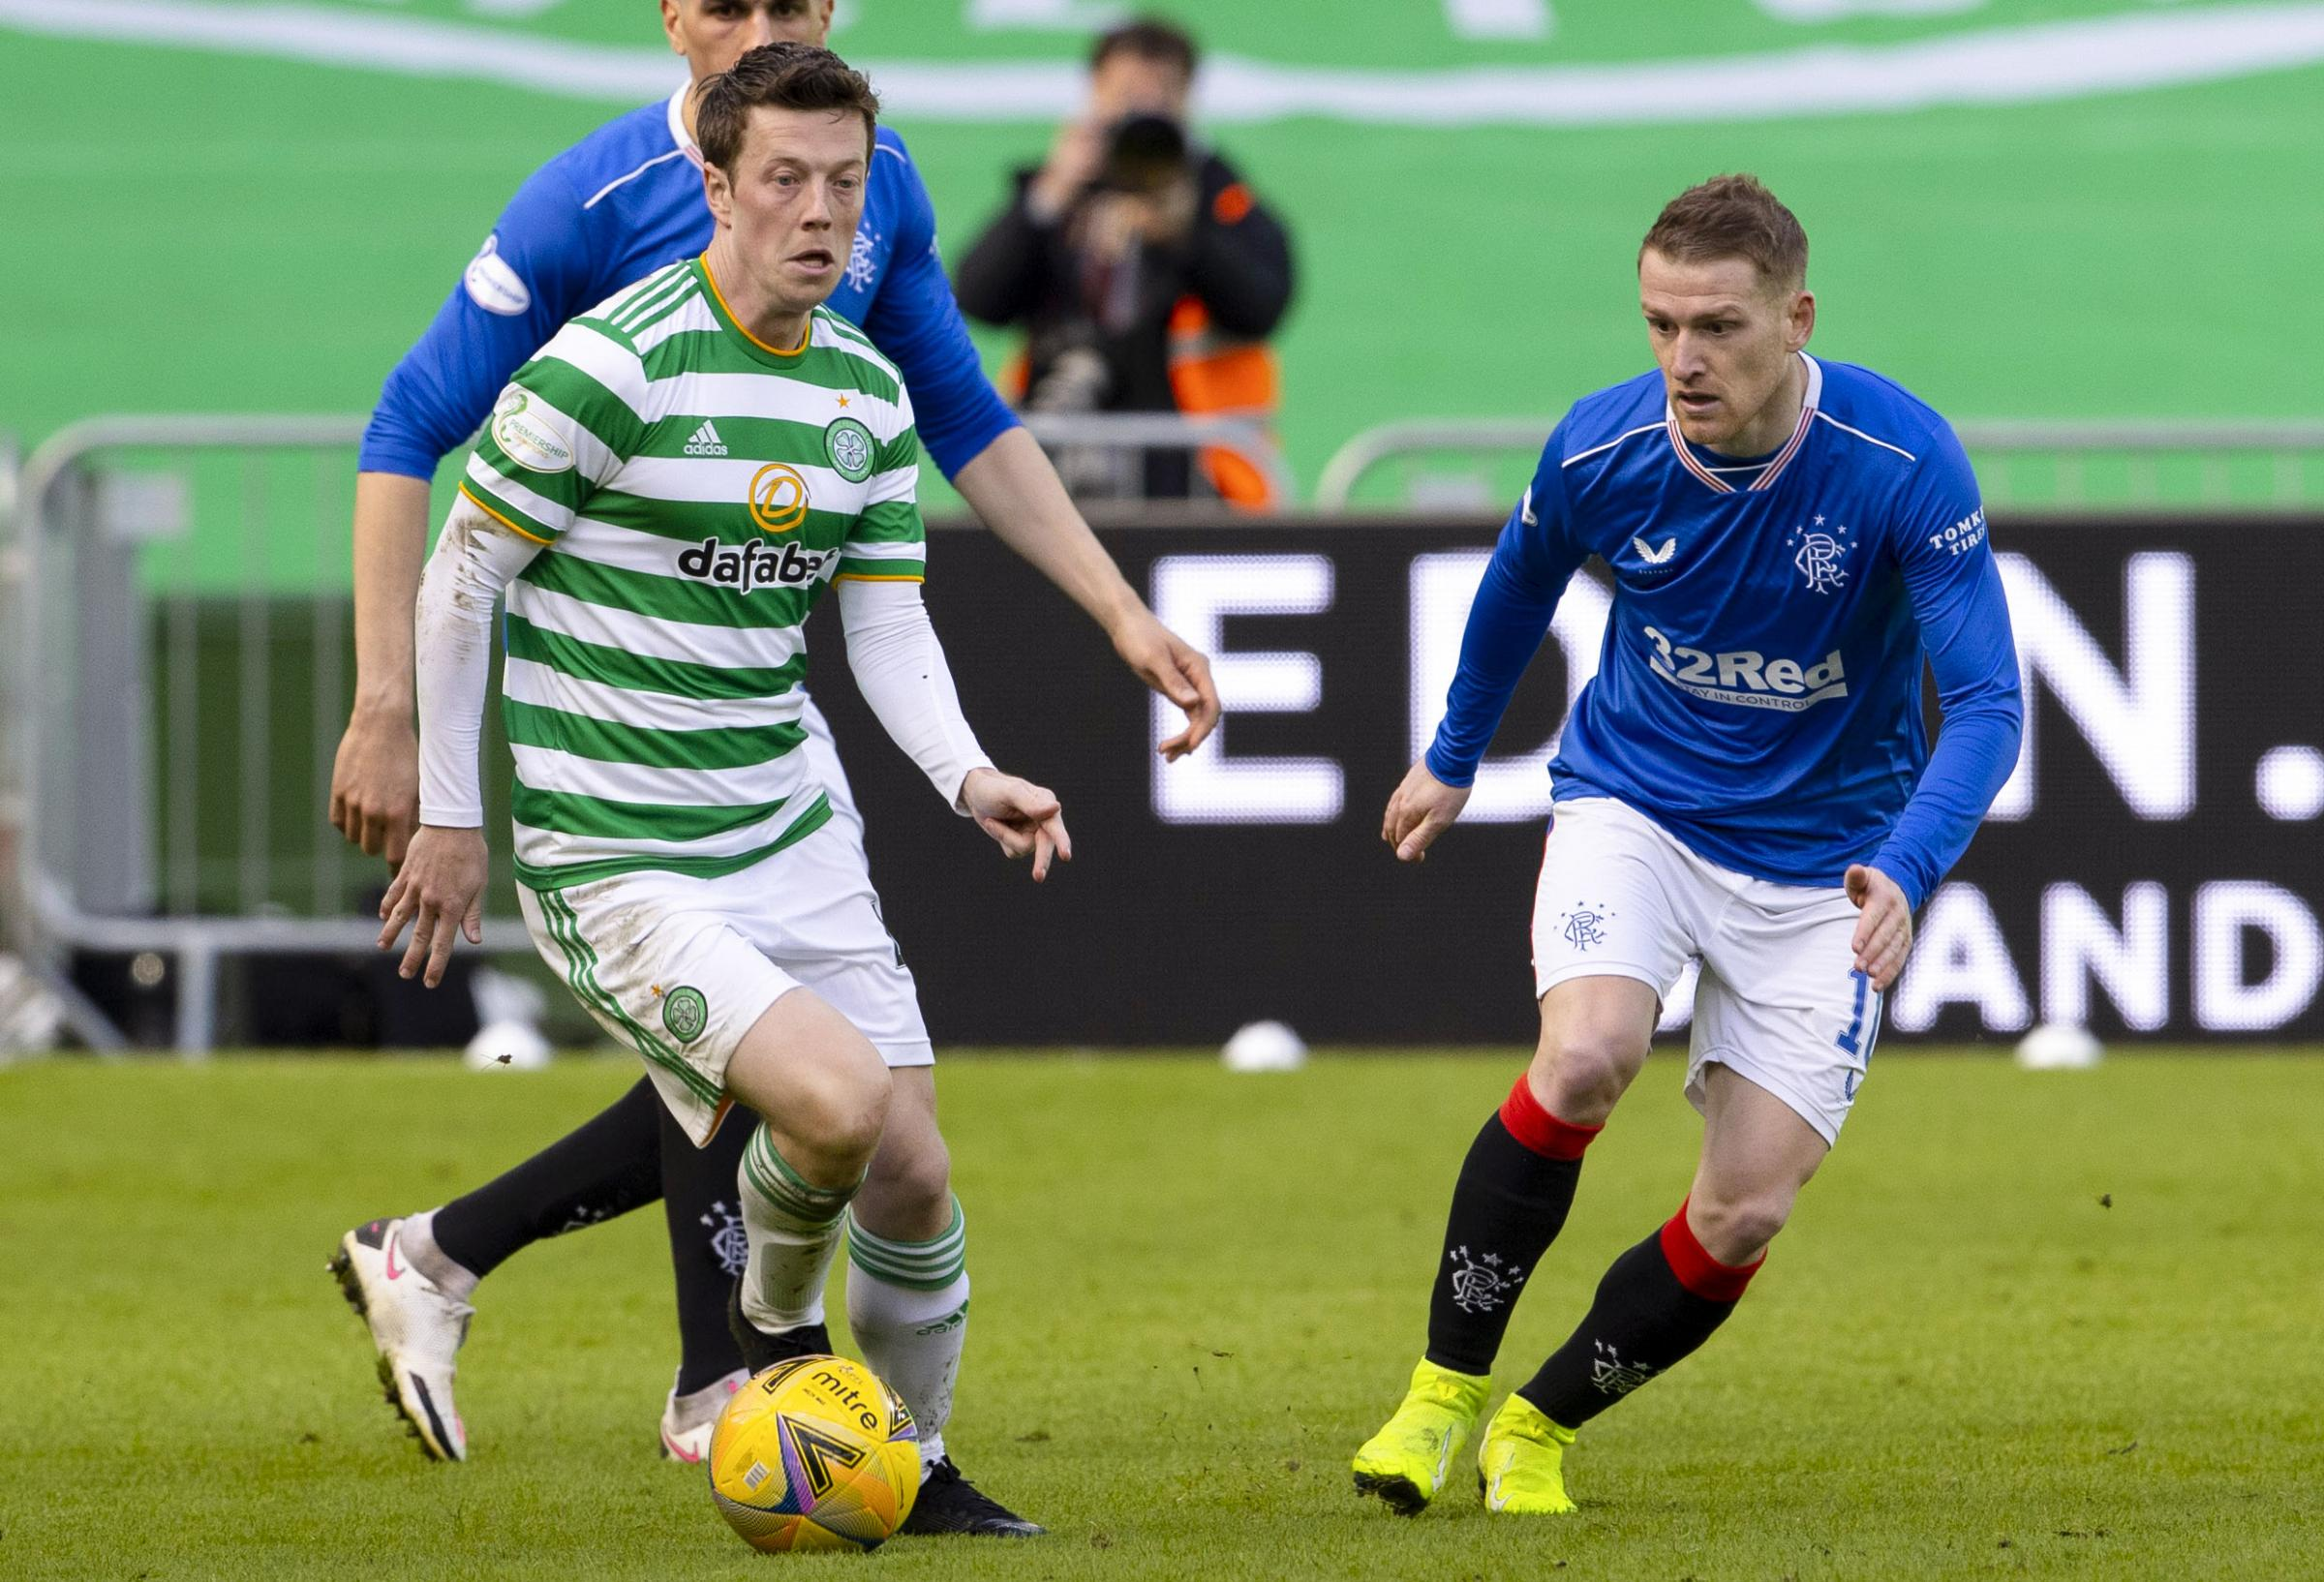 Rangers vs Celtic: Reputations are at stake and Hoops need win more in 'bare knuckle' derby battle, says ex-boss